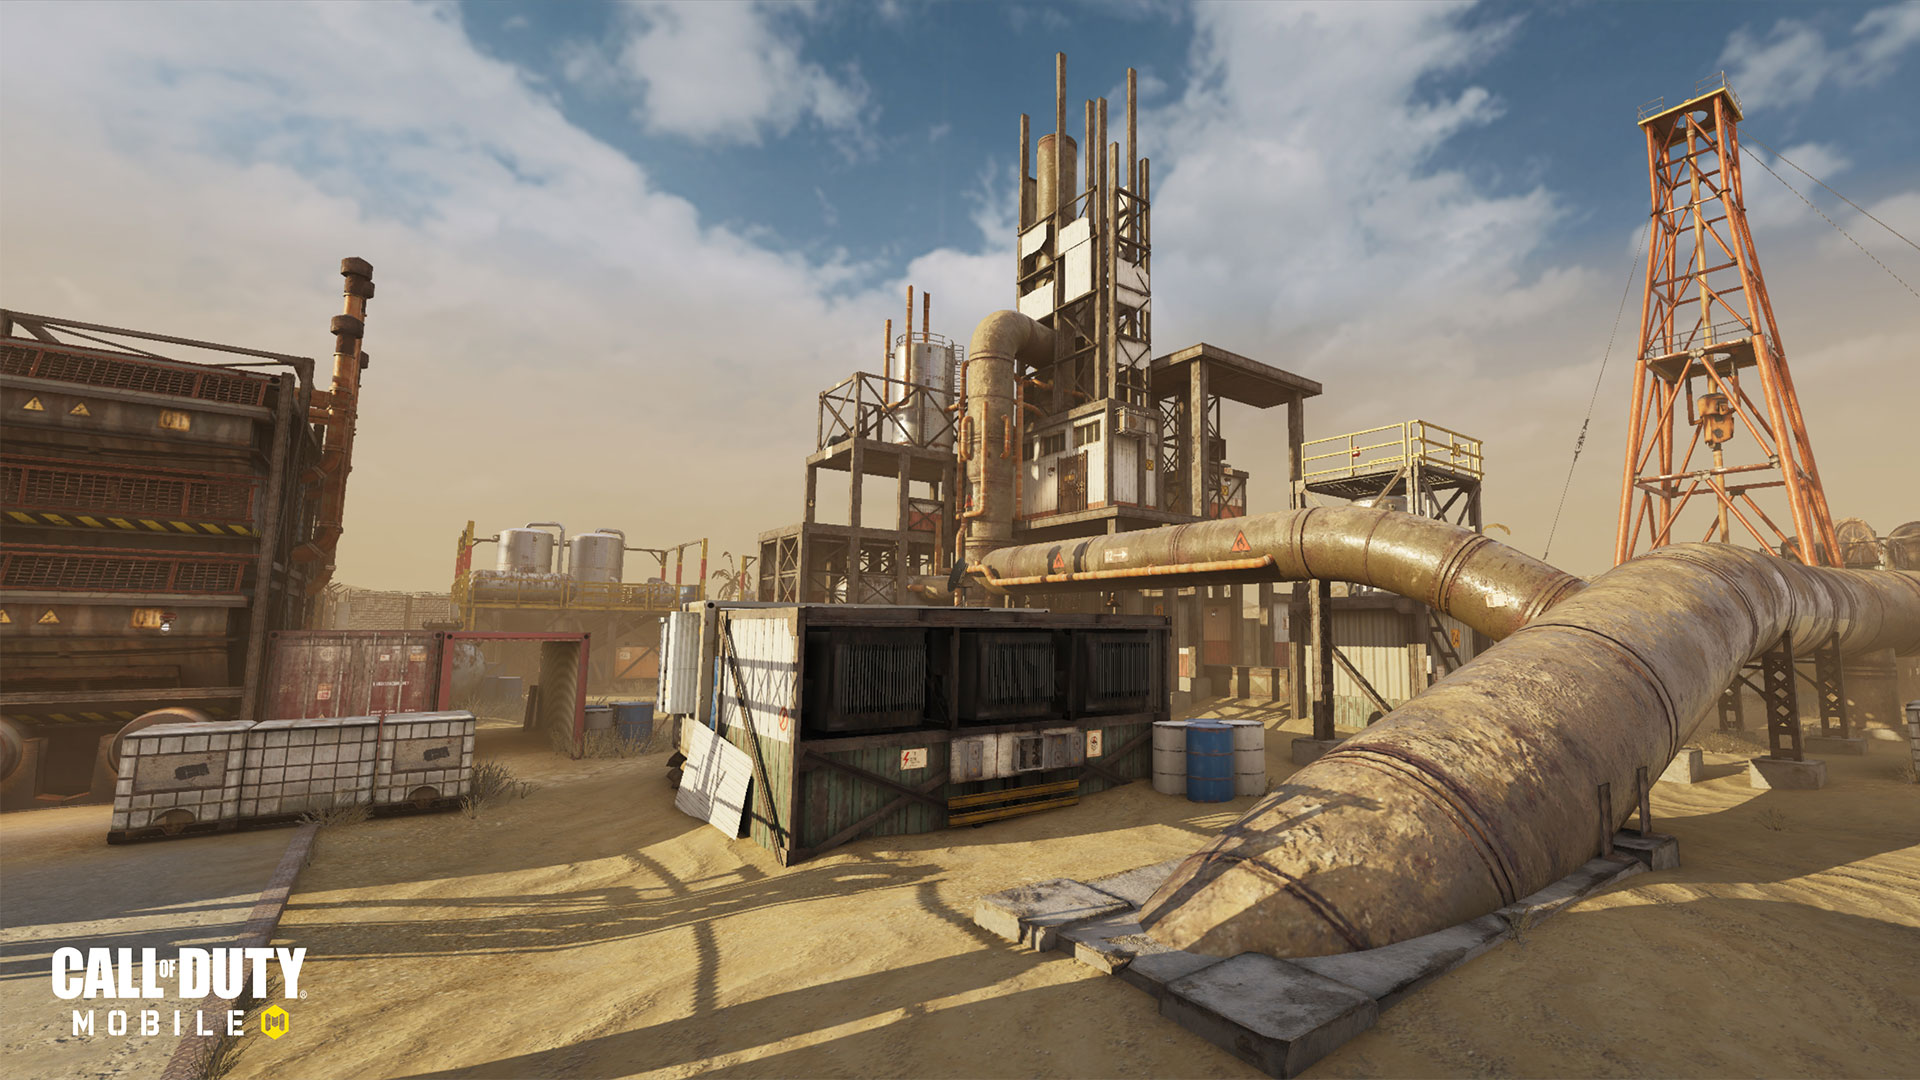 Call of Duty®: Mobile Map Snapshot: Rust - Image 3